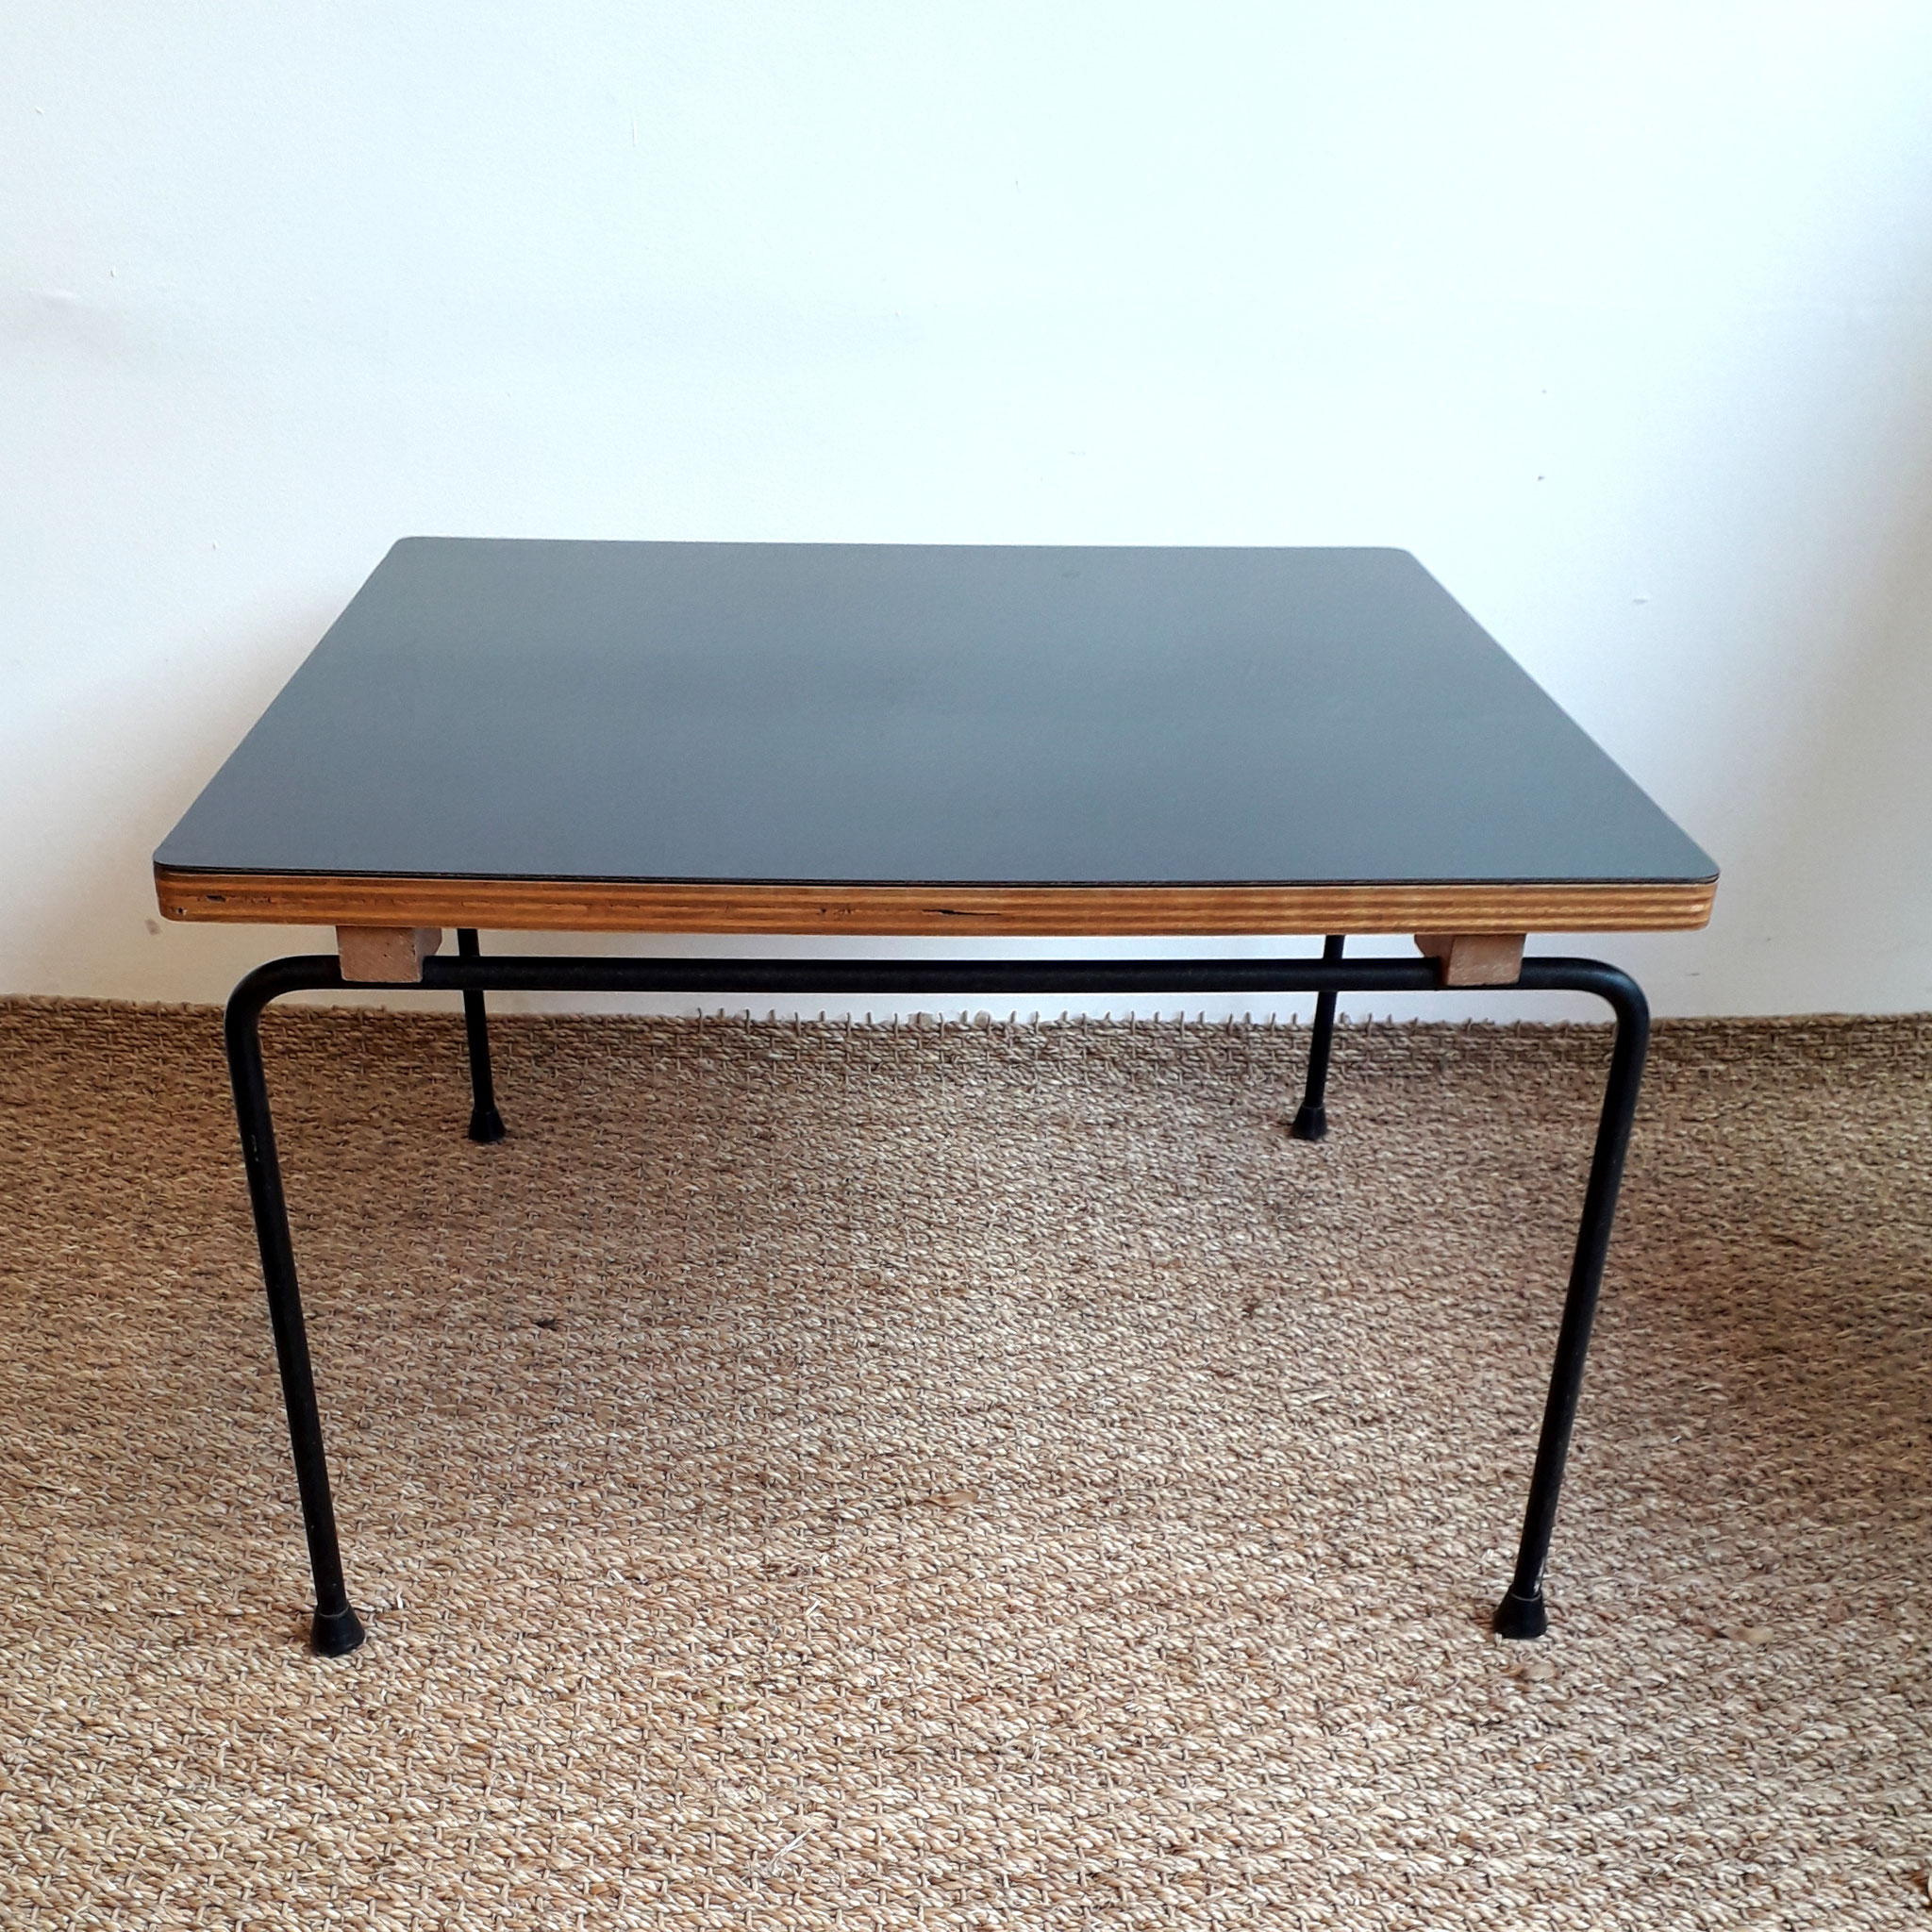 Table basse CM 192, édition Thonet, 1959